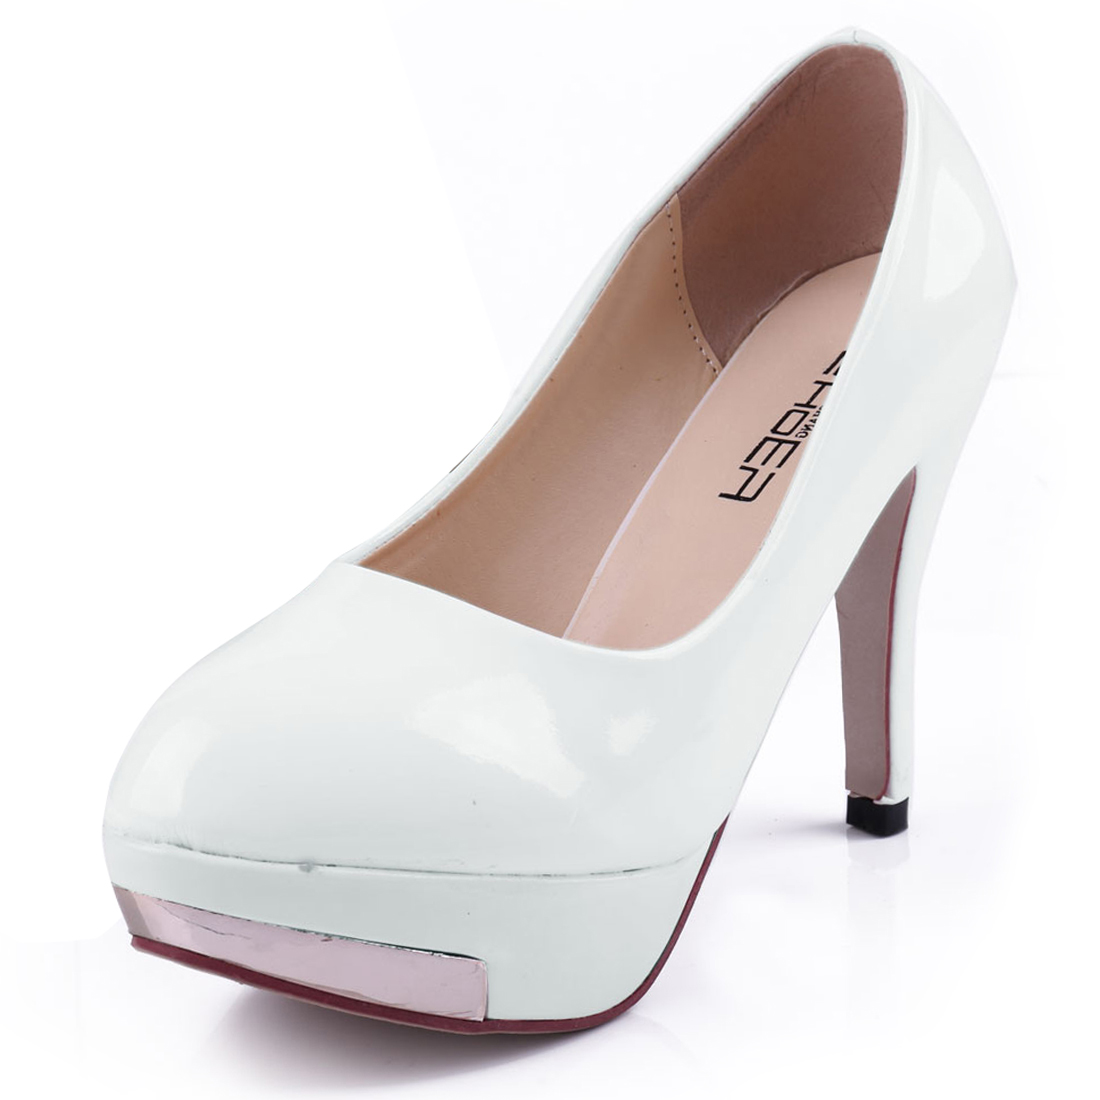 Women Fashion Round Toe Design White Faux Leather Platform Pumps US 7.5